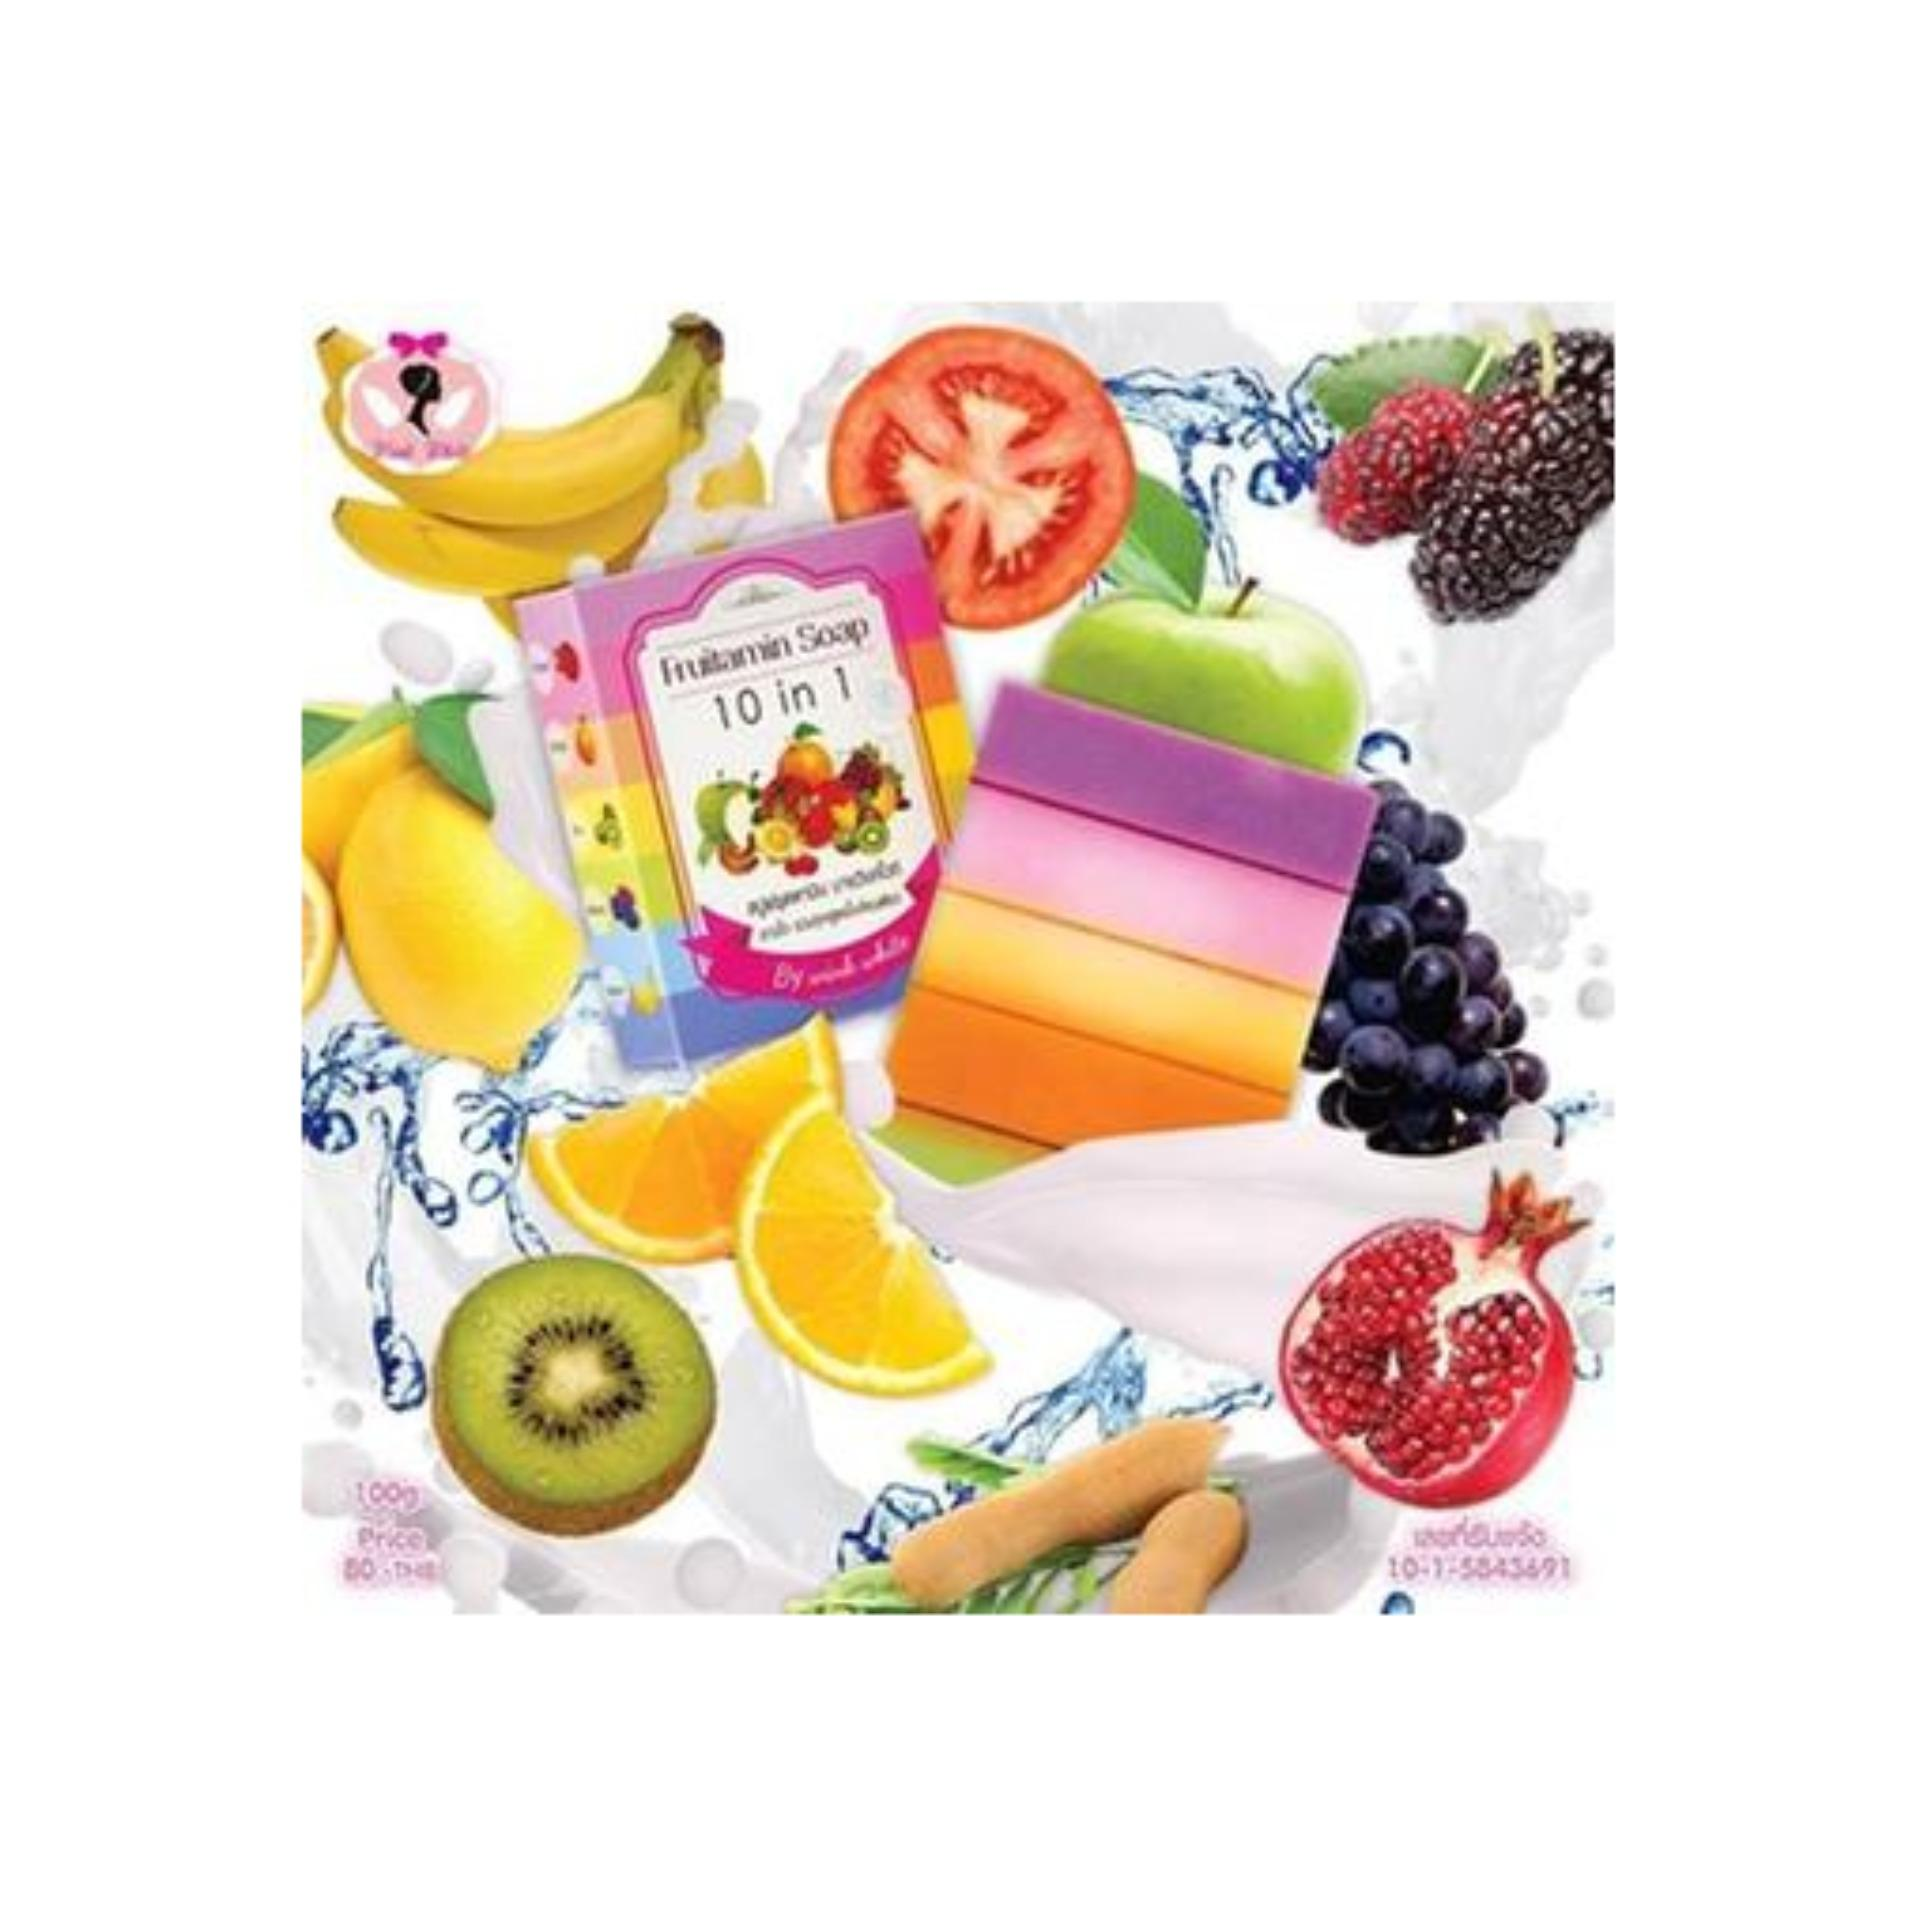 Spek Best Seller Sabun Pemutih Fruitamin Soap 10In1 By Wink White Original Thailand